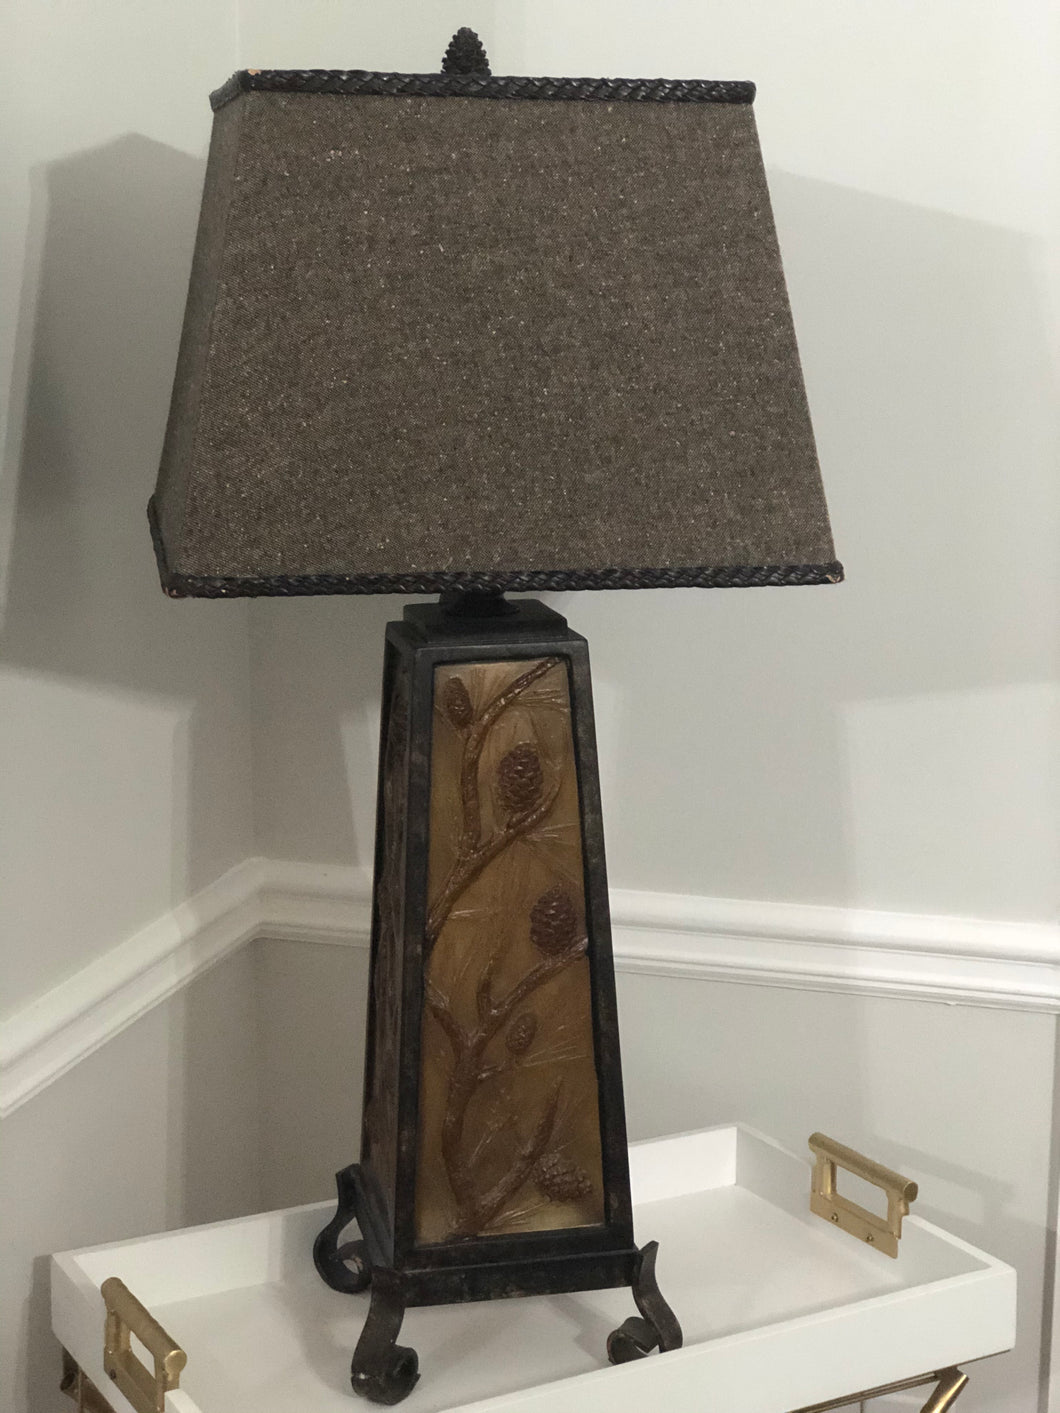 Resin Table Lamp with Night Light in Base